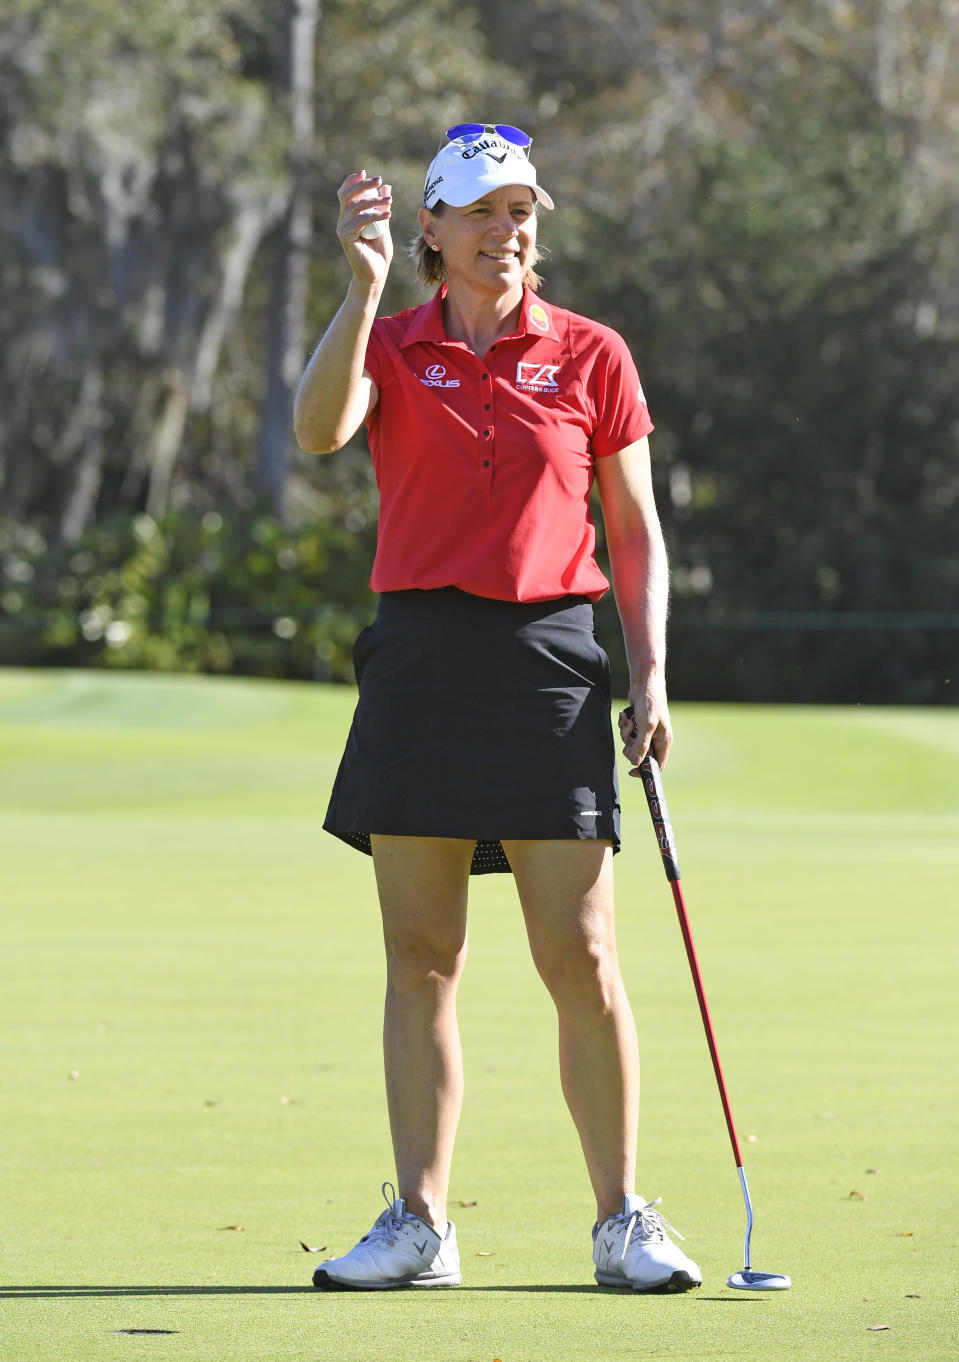 Annika Sorenstam, of Sweden, waves to fans on the putting green during the final round of the Gainbridge LPGA golf tournament Sunday, Feb. 28, 2021, in Orlando, Fla. (AP Photo/Stan Badz)